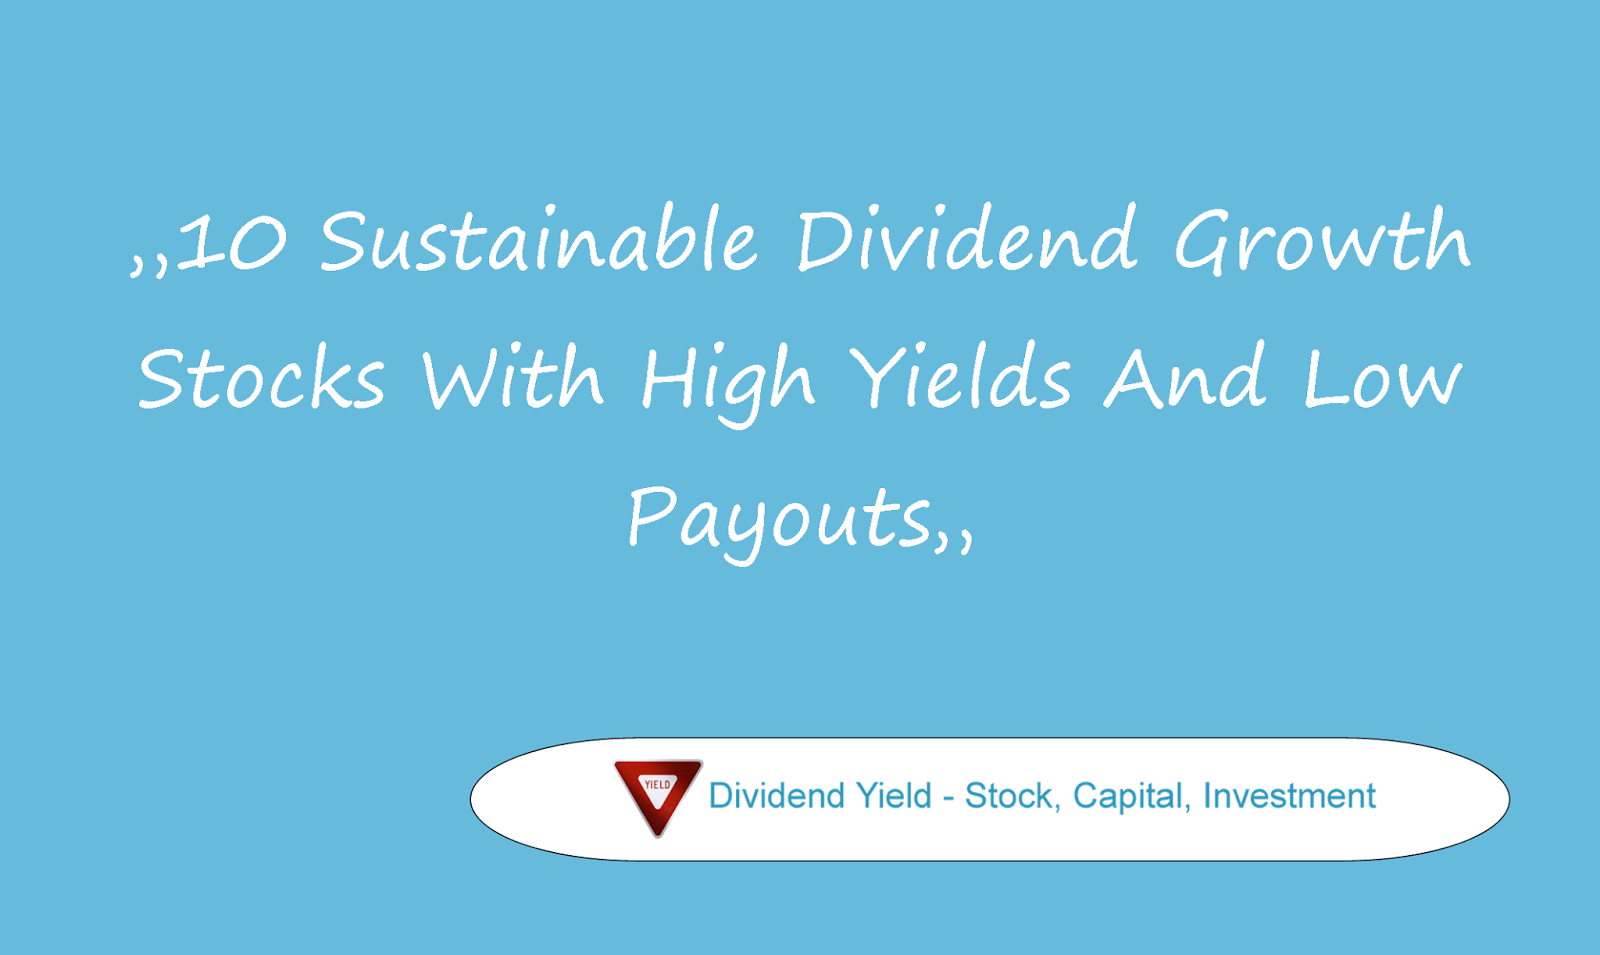 10 Sustainable Dividend Growth Stocks With High Yields And Low Payouts